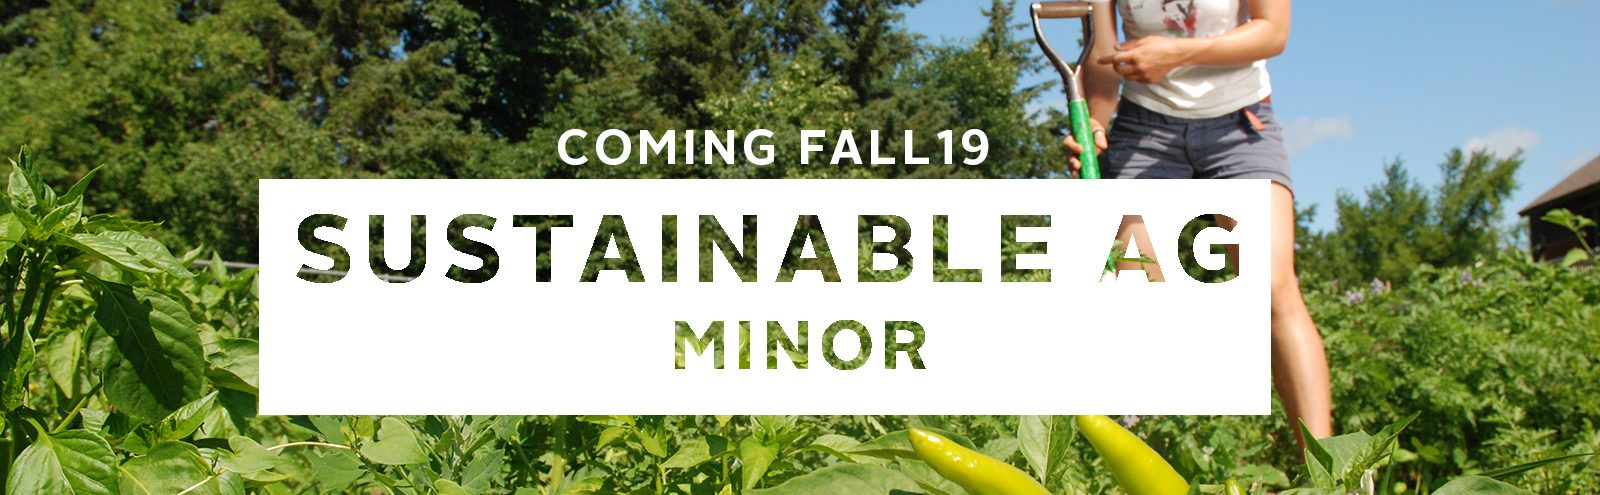 Sustainable Ag Minor